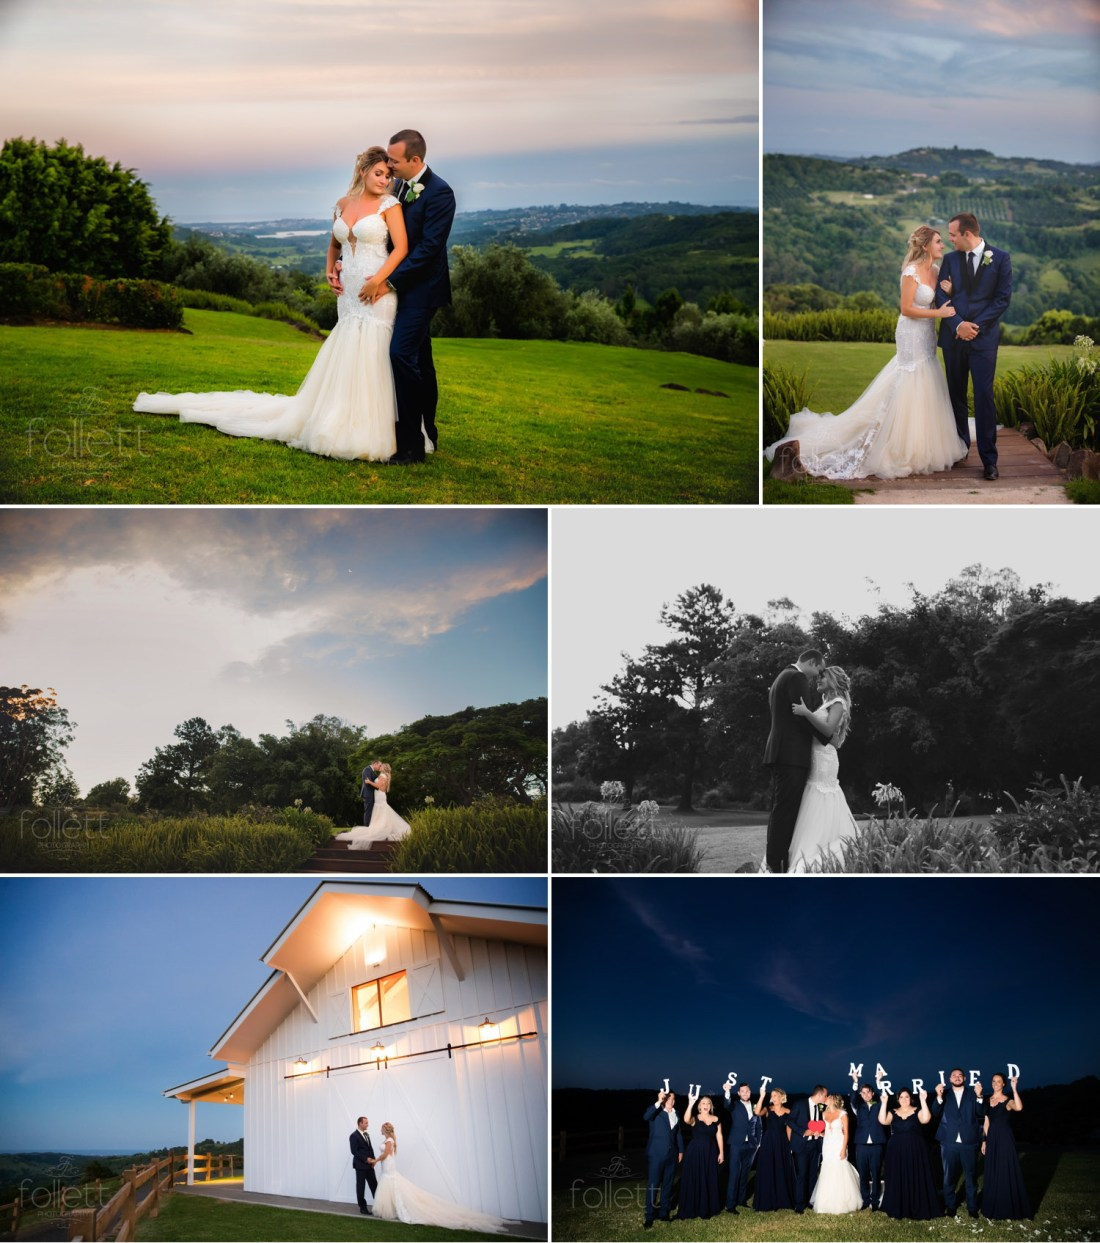 Sunset Photo at Summergrove Estate by Follett Photography